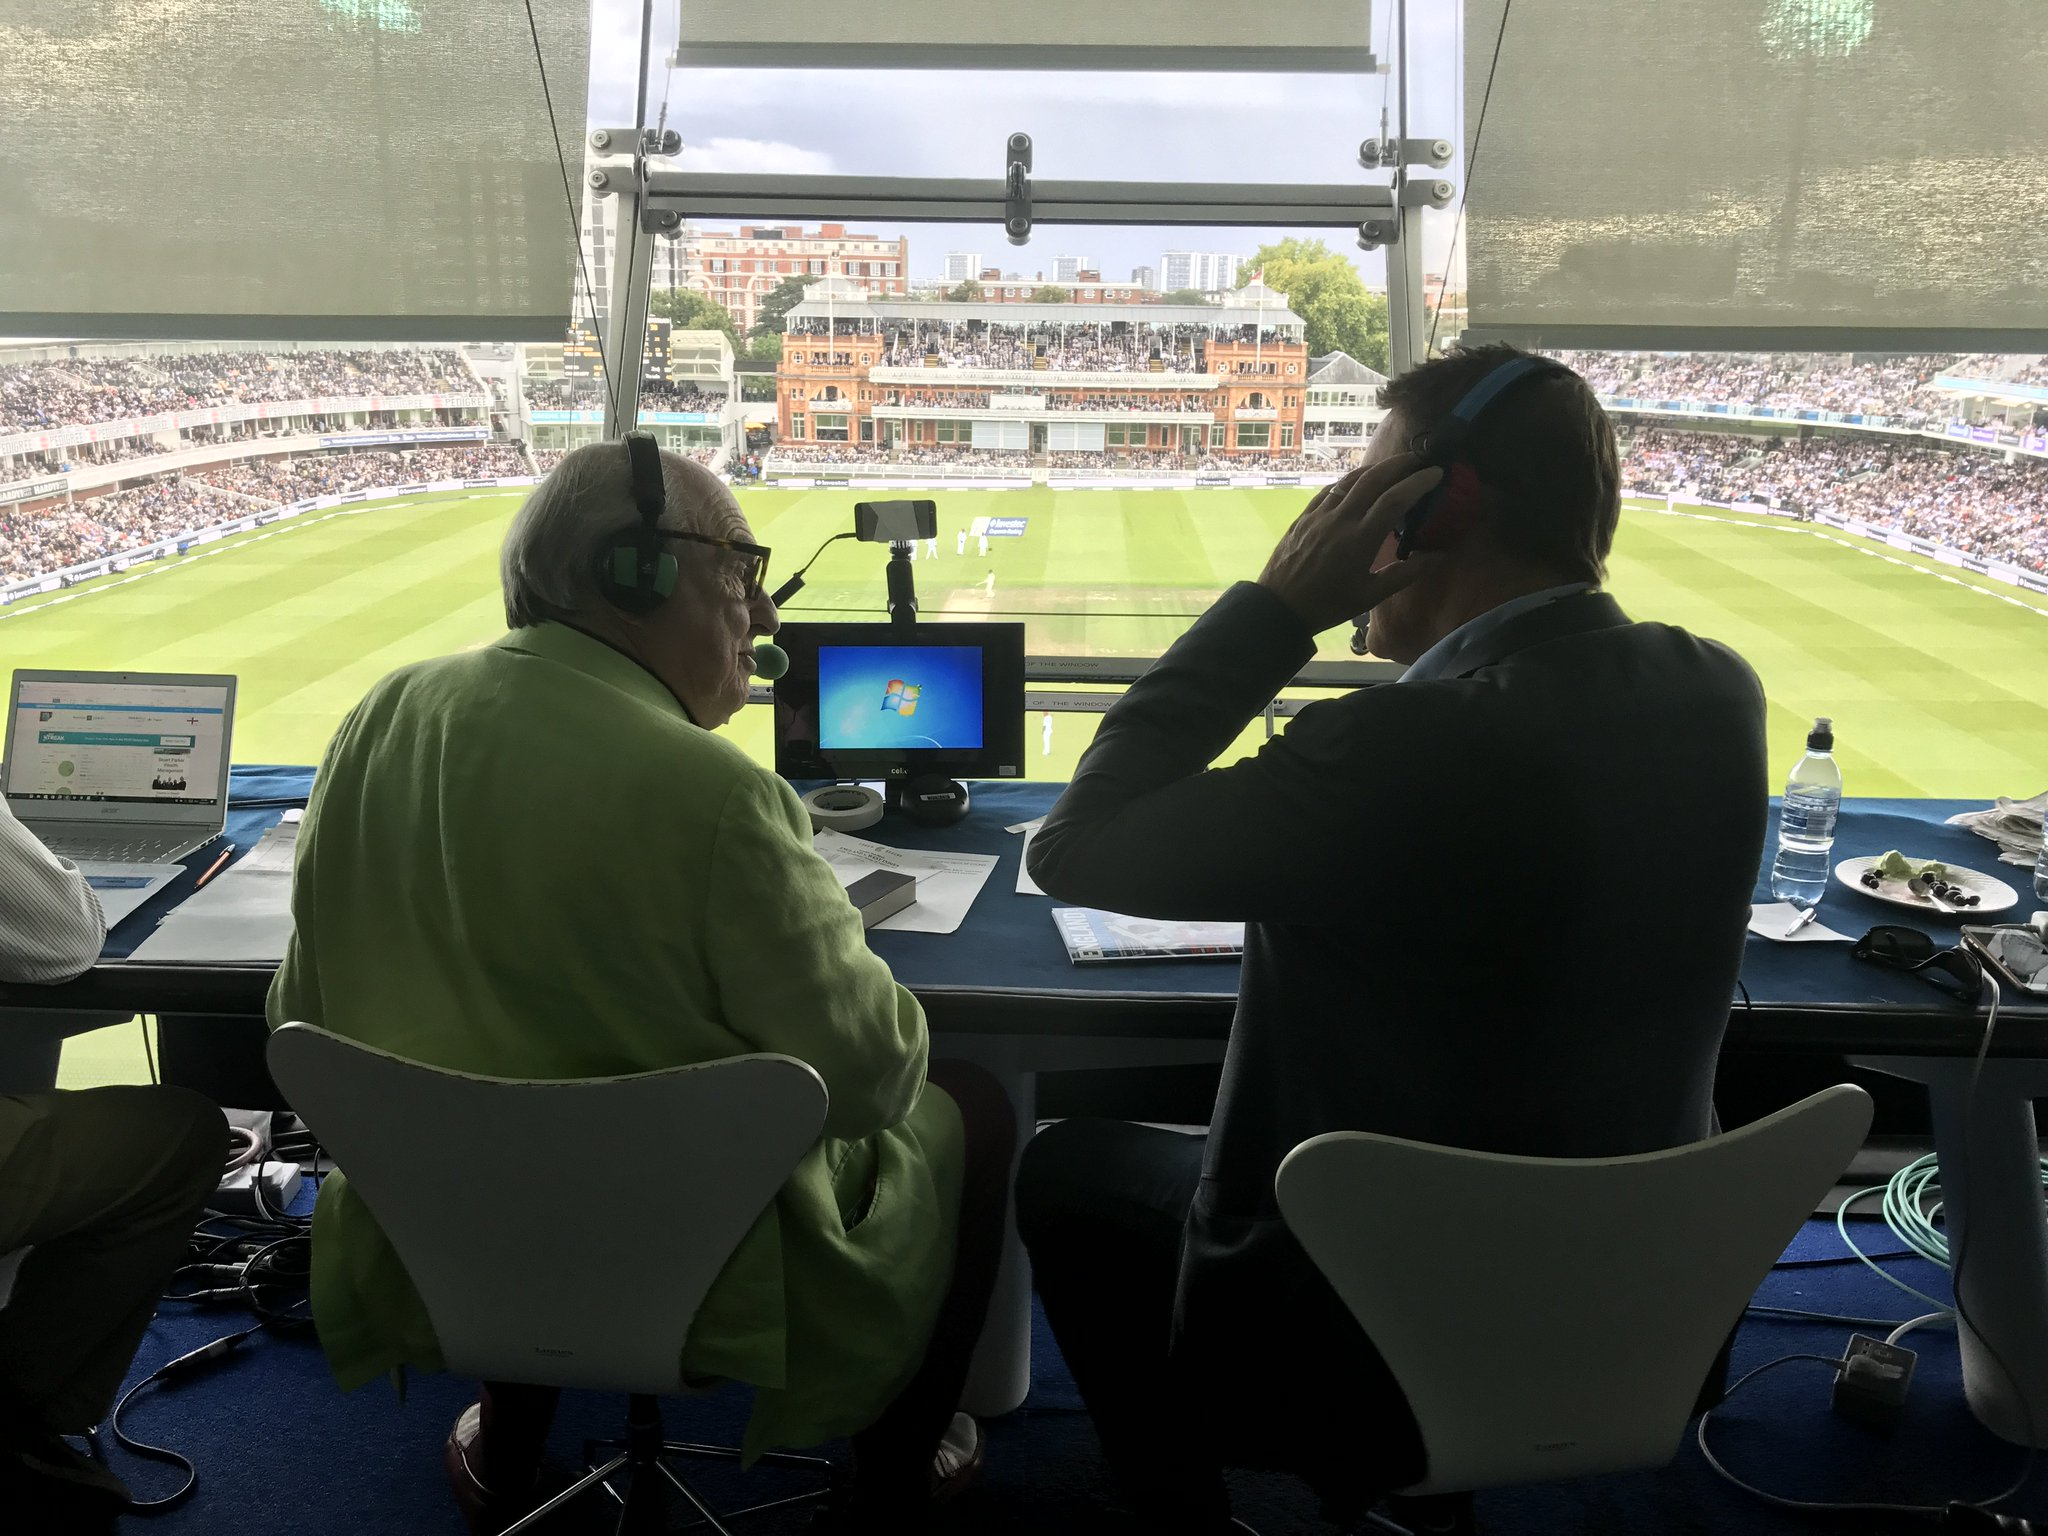 RT @bbctms: If you want to WATCH the final Blowers commentary spell, head here:  https://t.co/QS0qMD5hlx https://t.co/duFGEdv3Wm